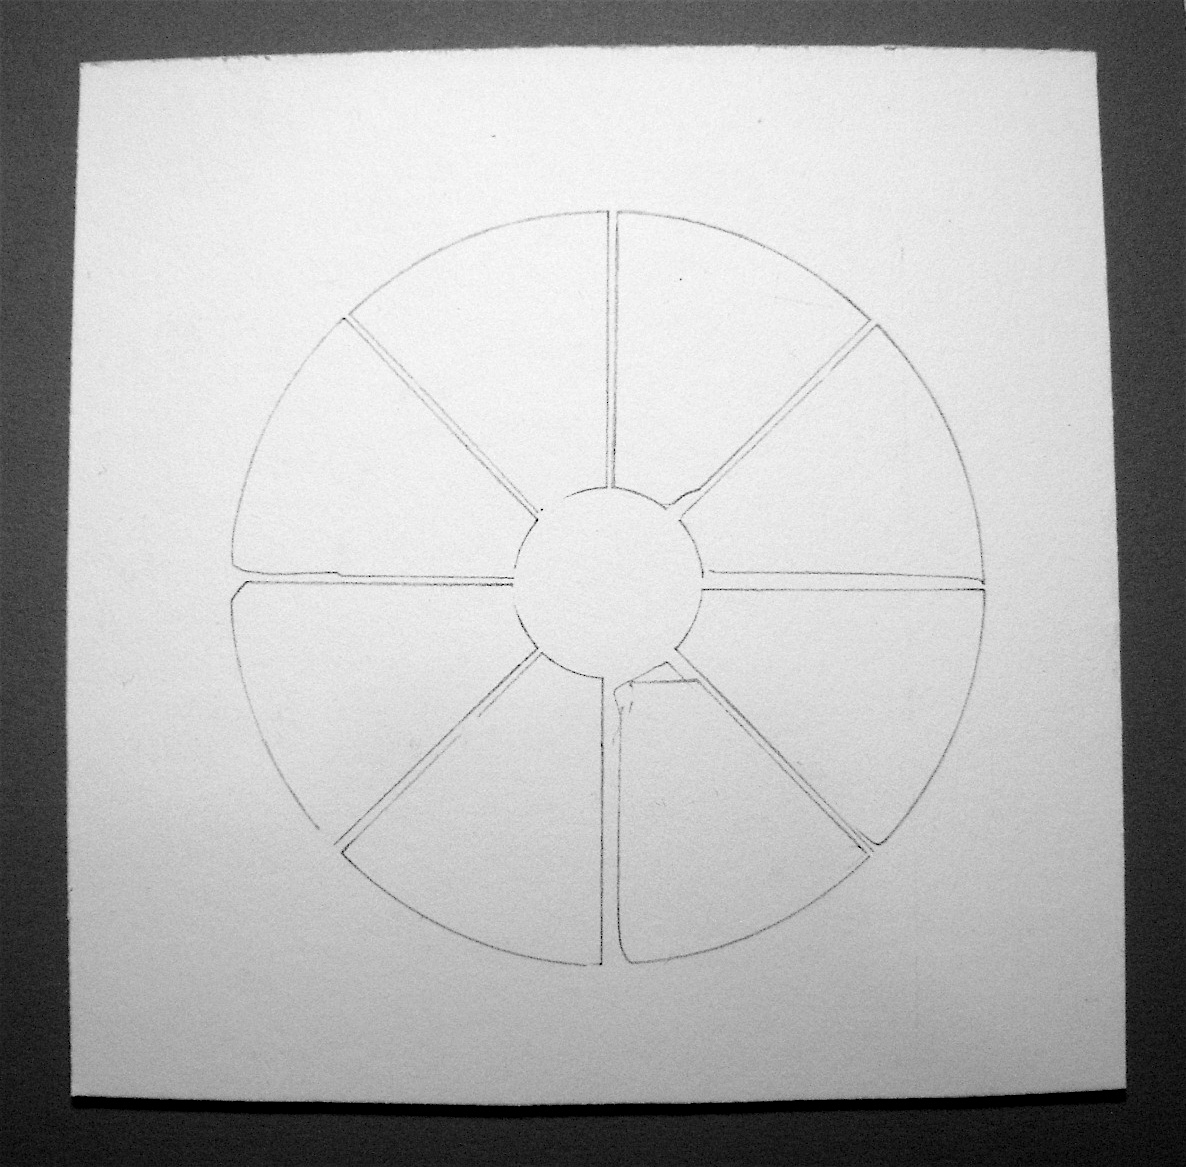 Enthusiastic Artist: A simple mandala template